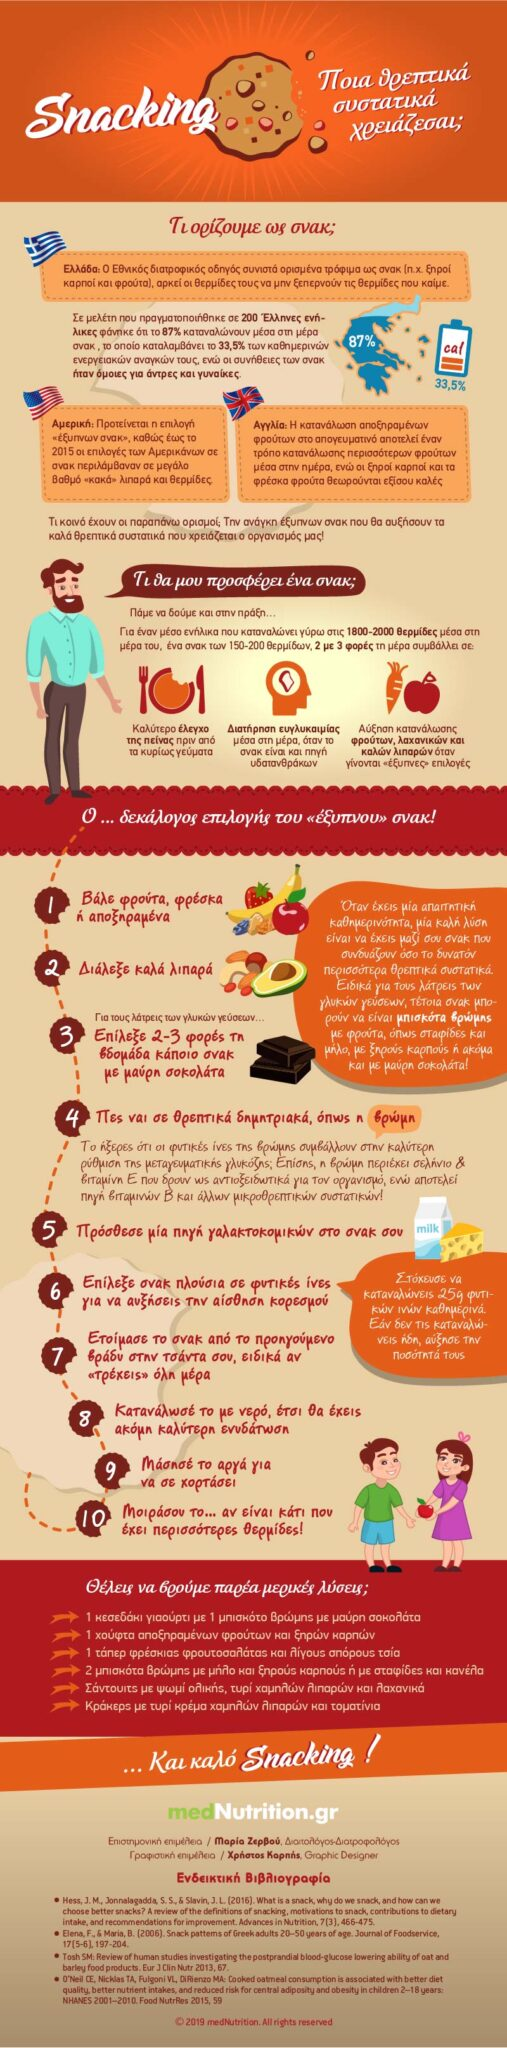 infographic snacking 800px